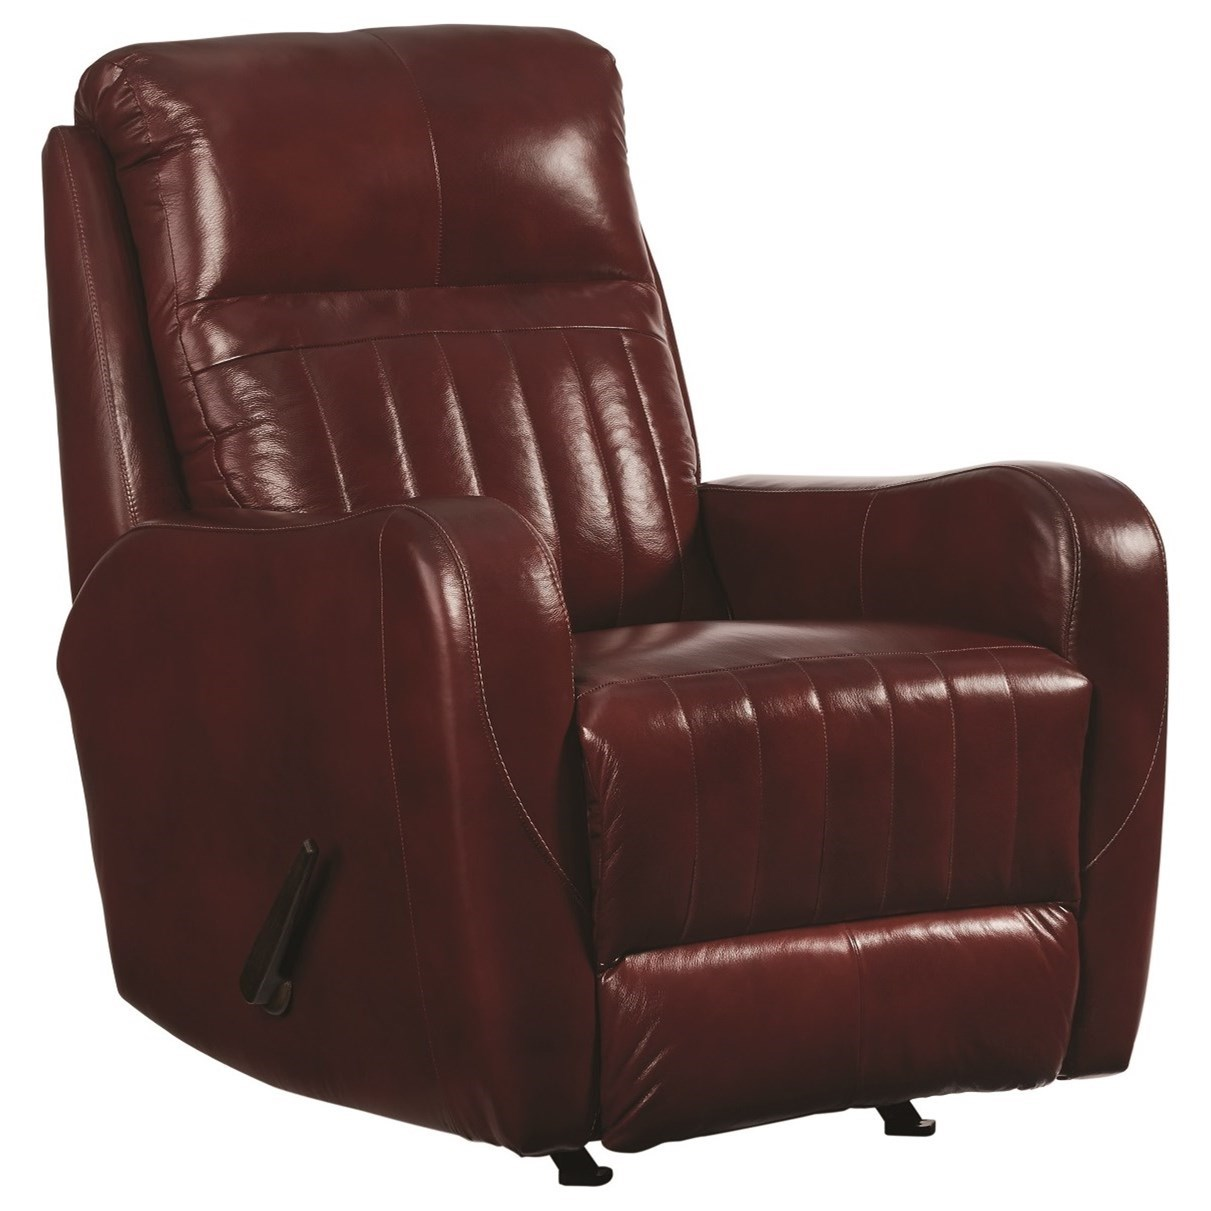 Racetrack Rocker Power Recliner by Southern Motion at Home Furnishings Direct